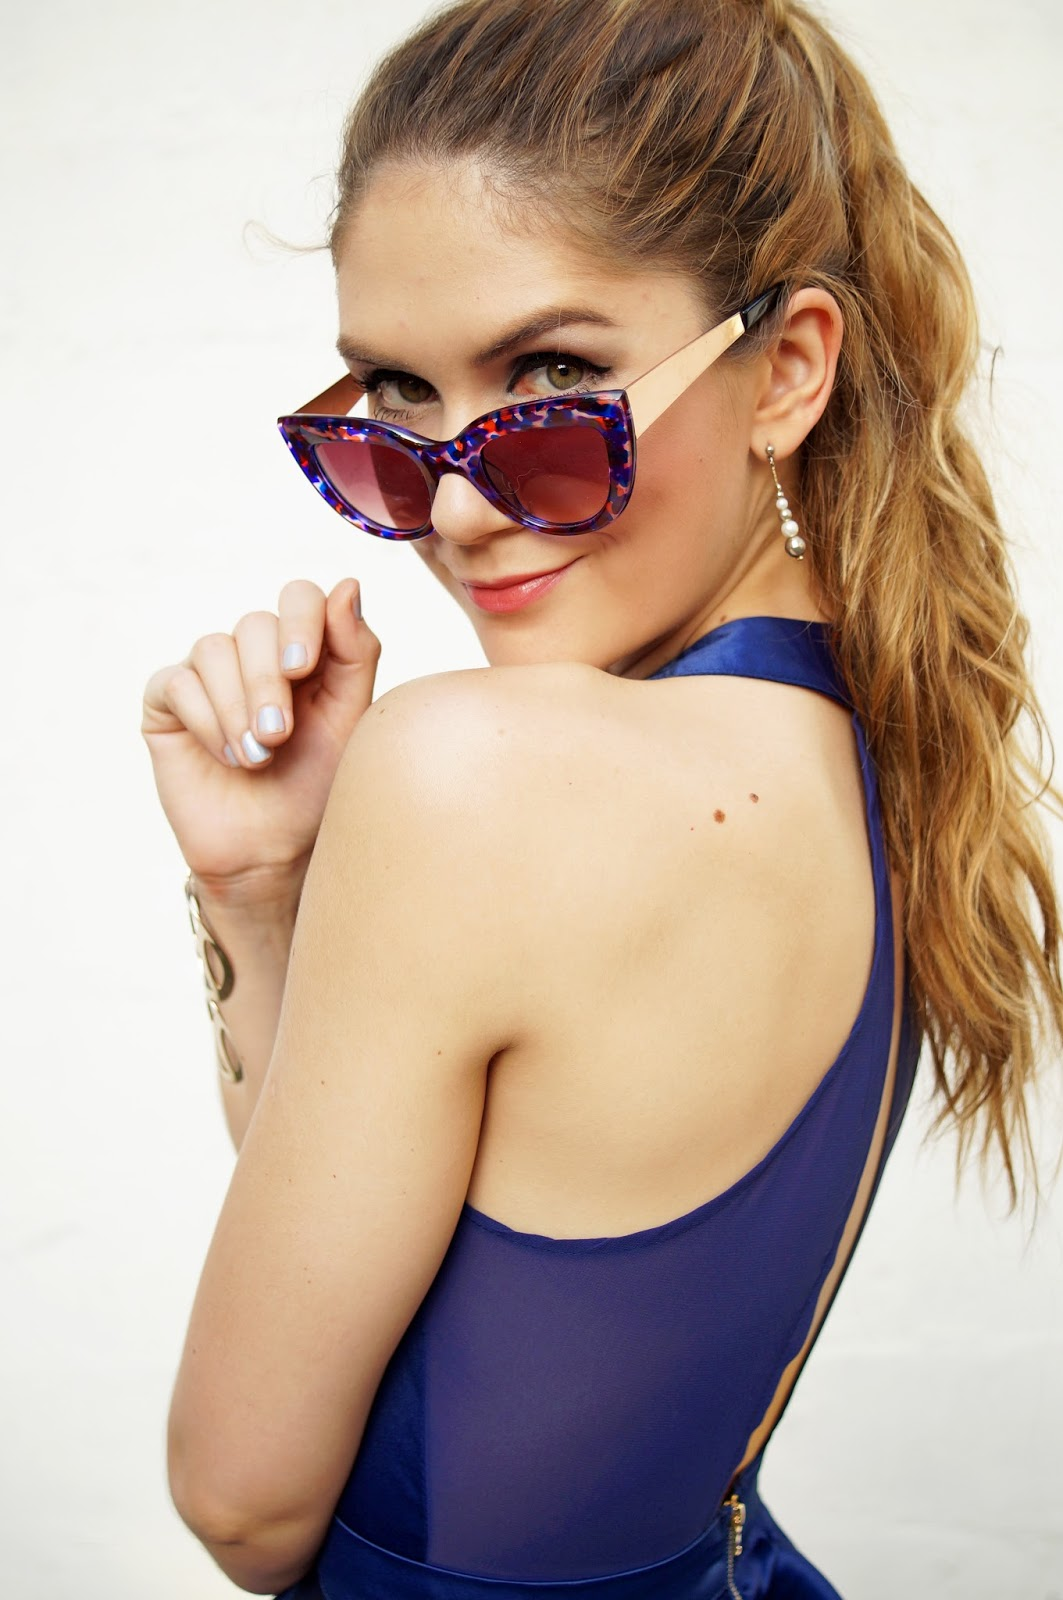 Venture out and wear fun sunglasses this Spring and Summer!